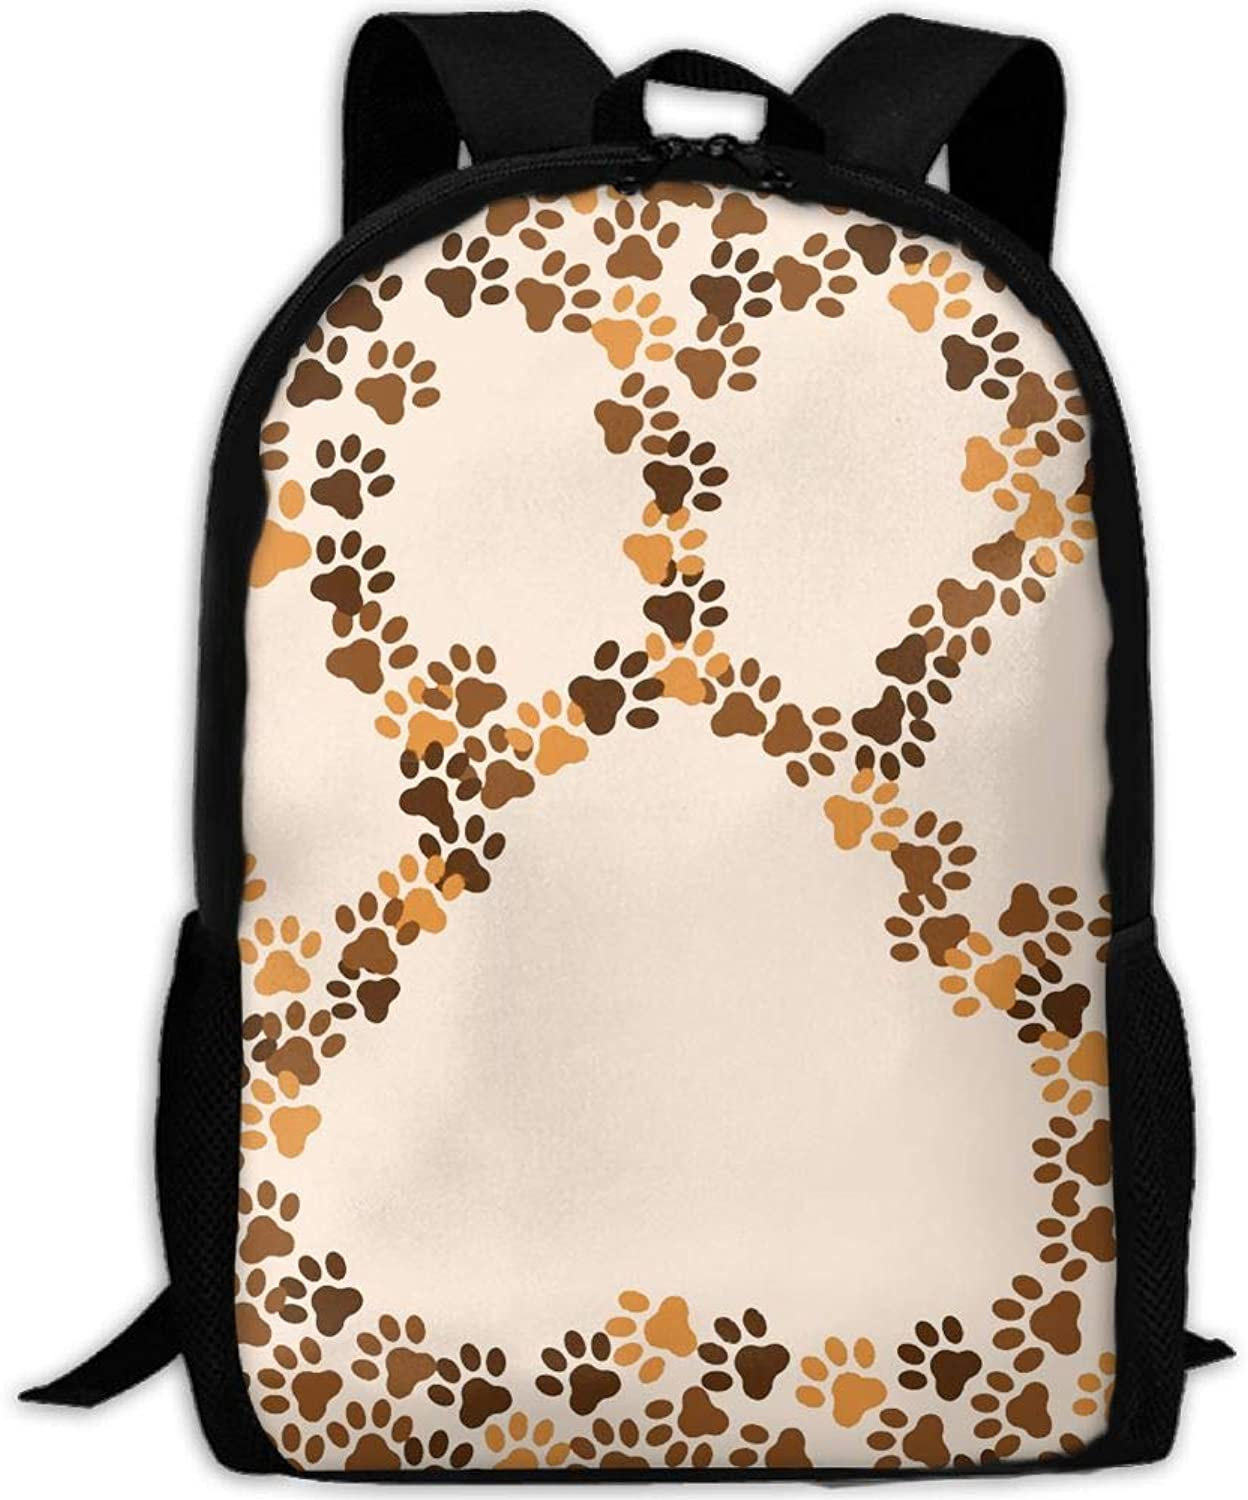 Adult Backpack Animal Dog and Cat Paws College Daypack Oxford Bag Unisex Business Travel Sports Bag with Adjustable Strap